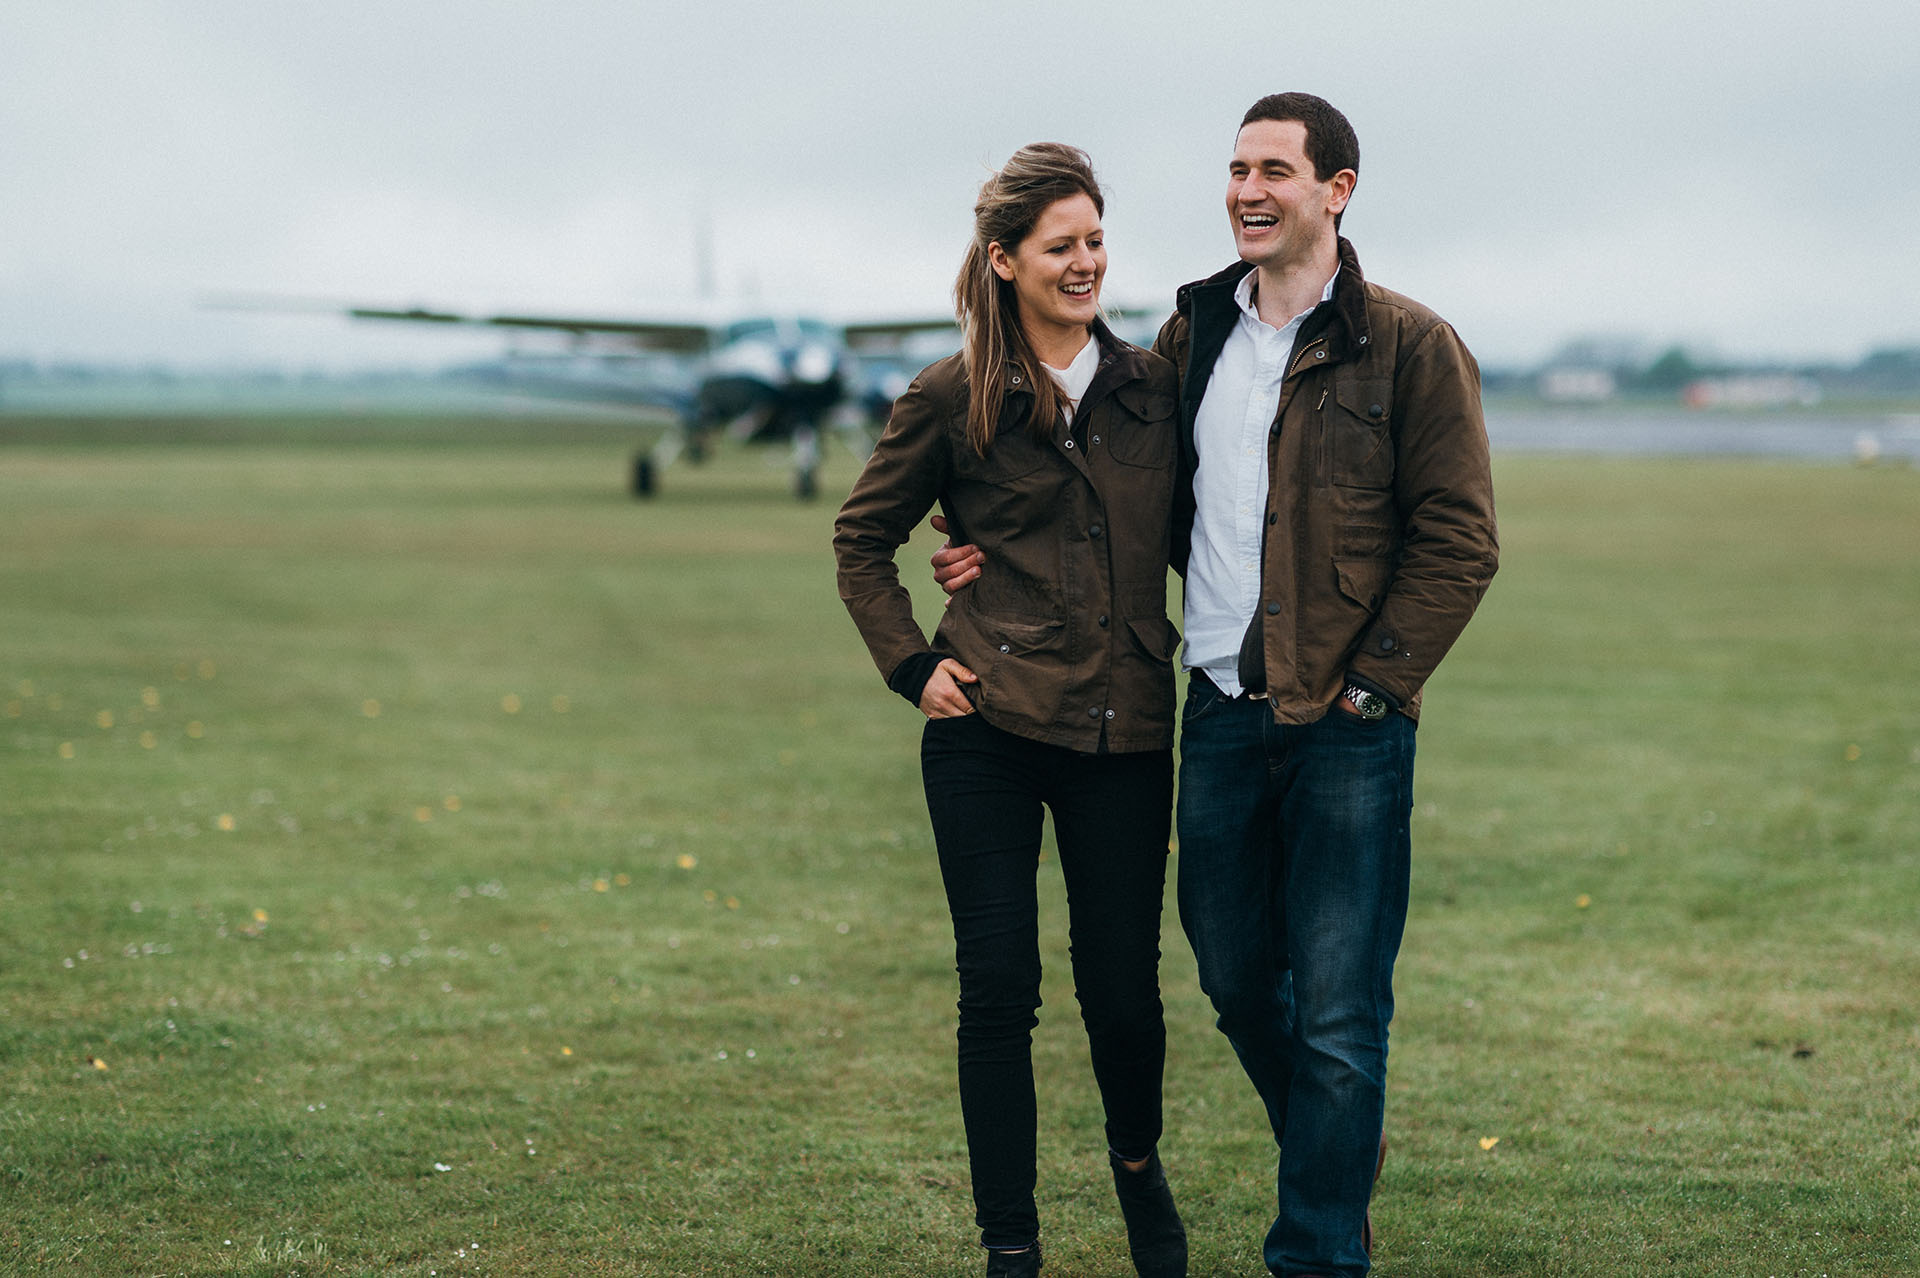 Dunkeswell Airfield Engagement Photographs_16